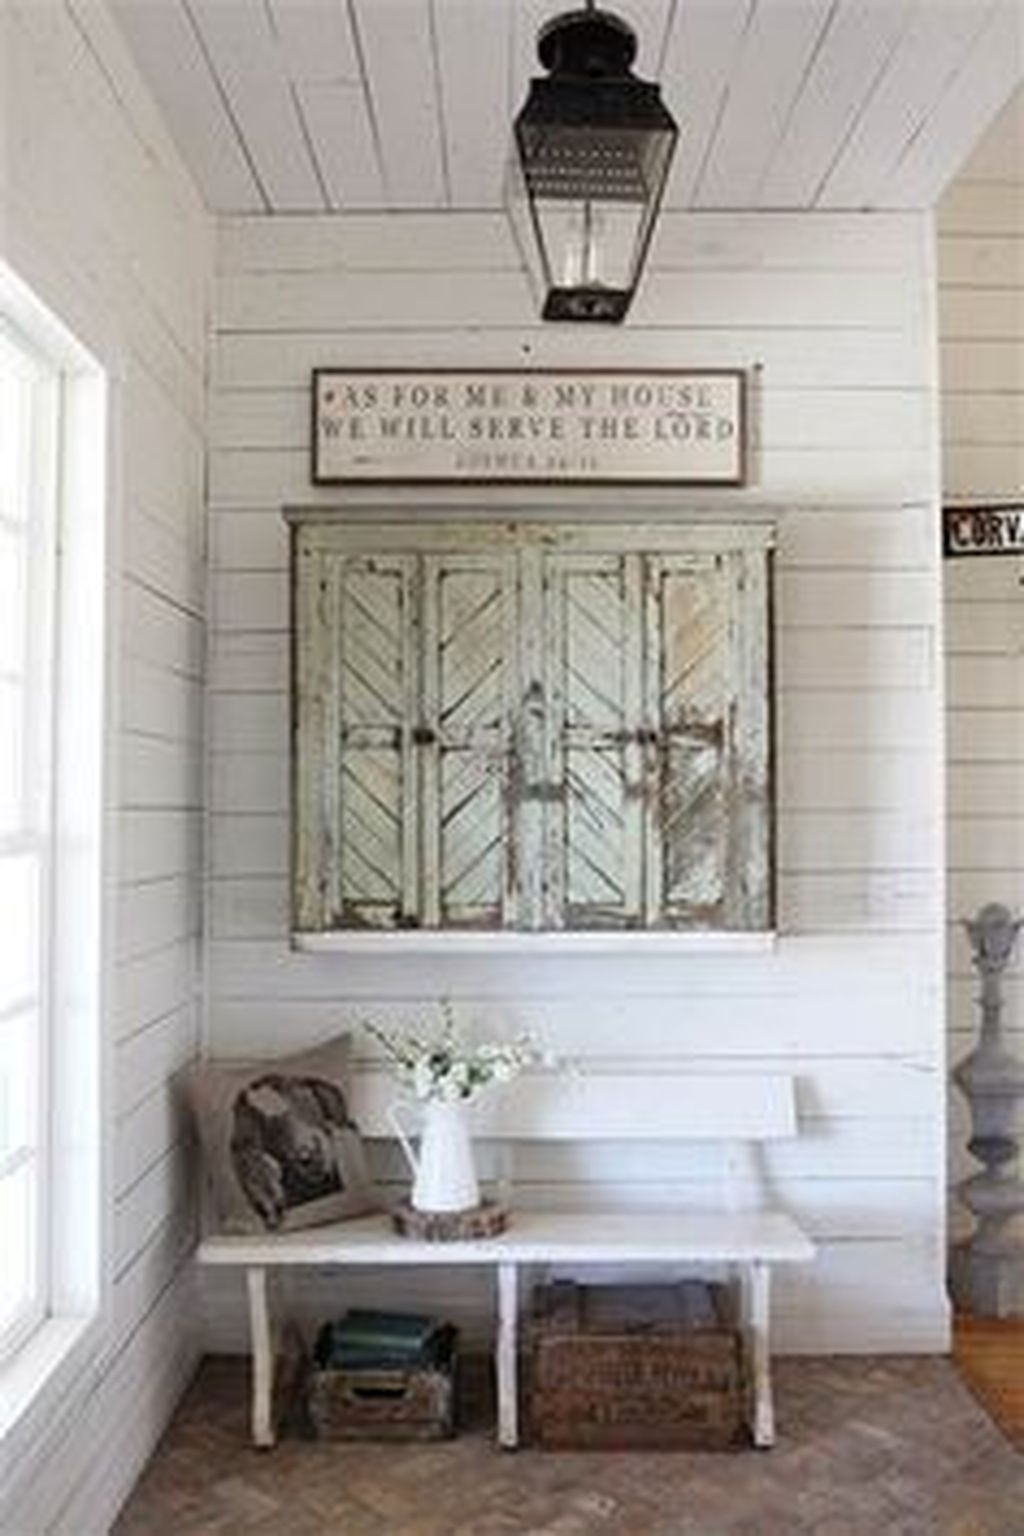 Splendid Entryway Home Décor Ideas That Make Your Place Look Cool 35